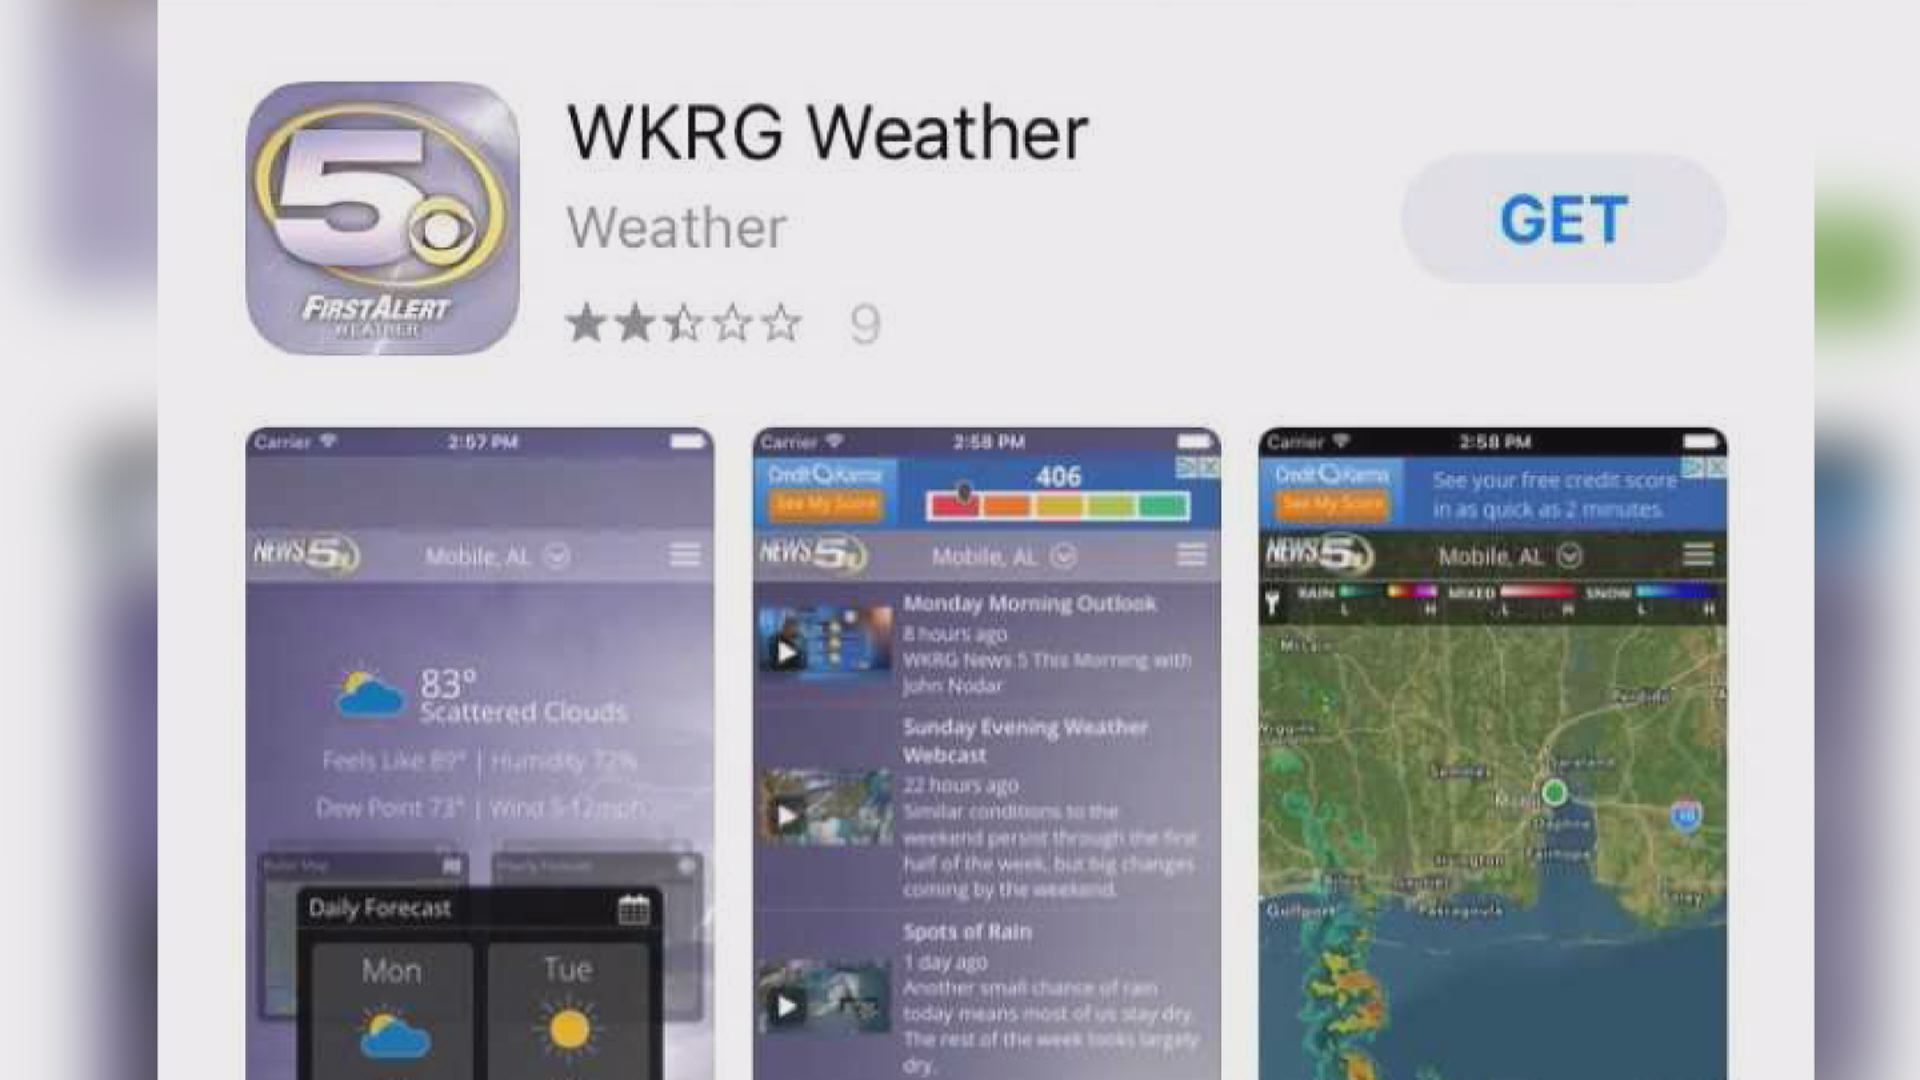 Download The Weather App – WKRG News 5